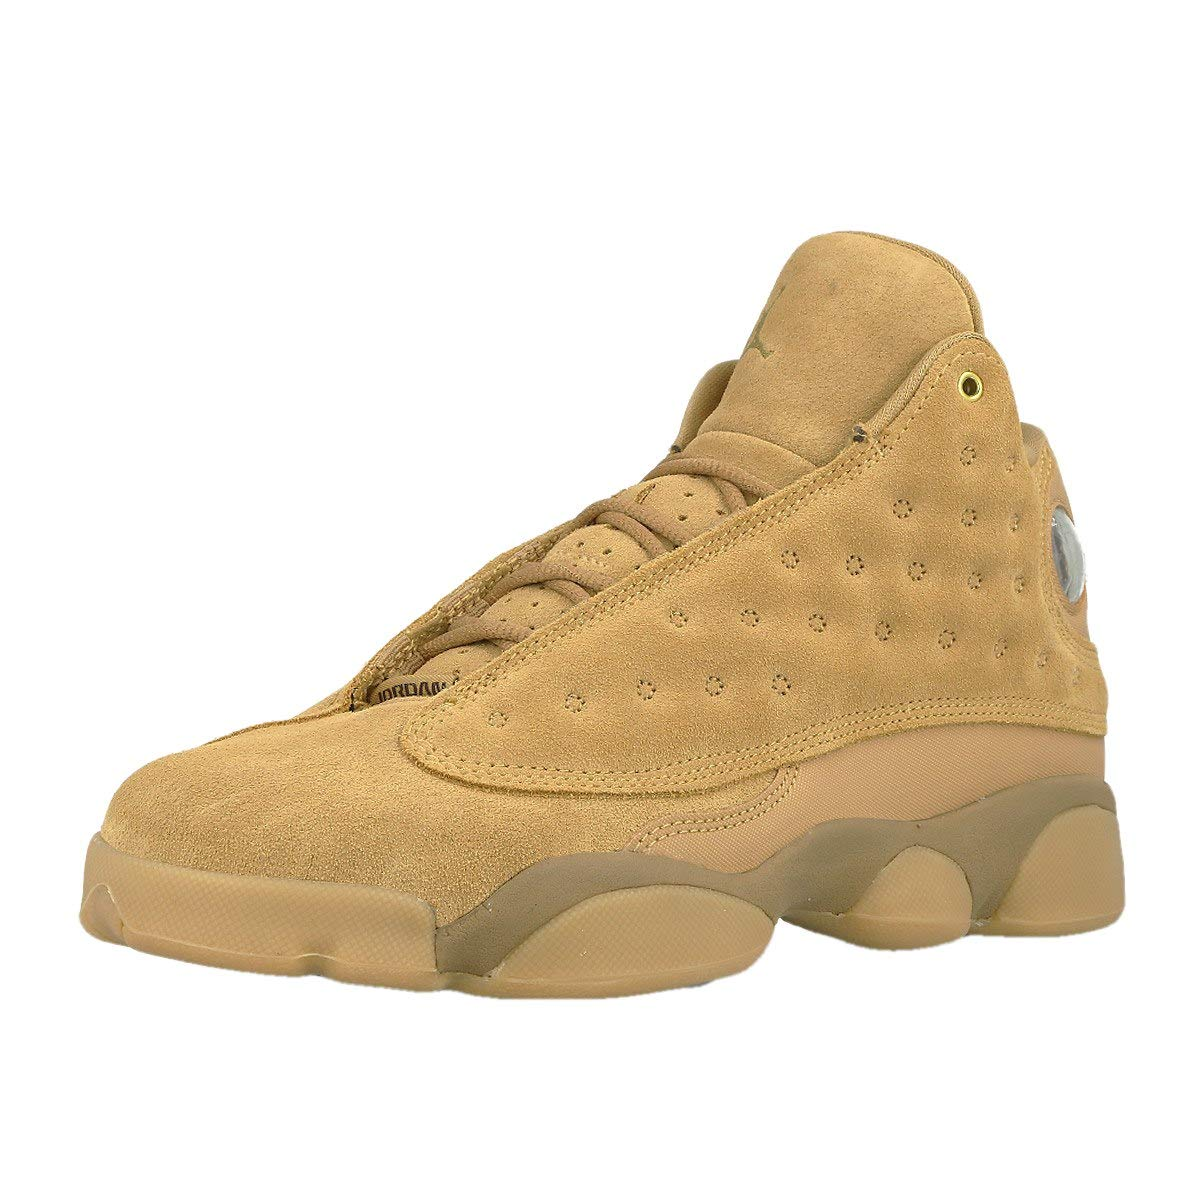 online store e85a4 4b7ad Amazon.com | Nike Kids Air Jordan 13 Retro BG Wheat ...